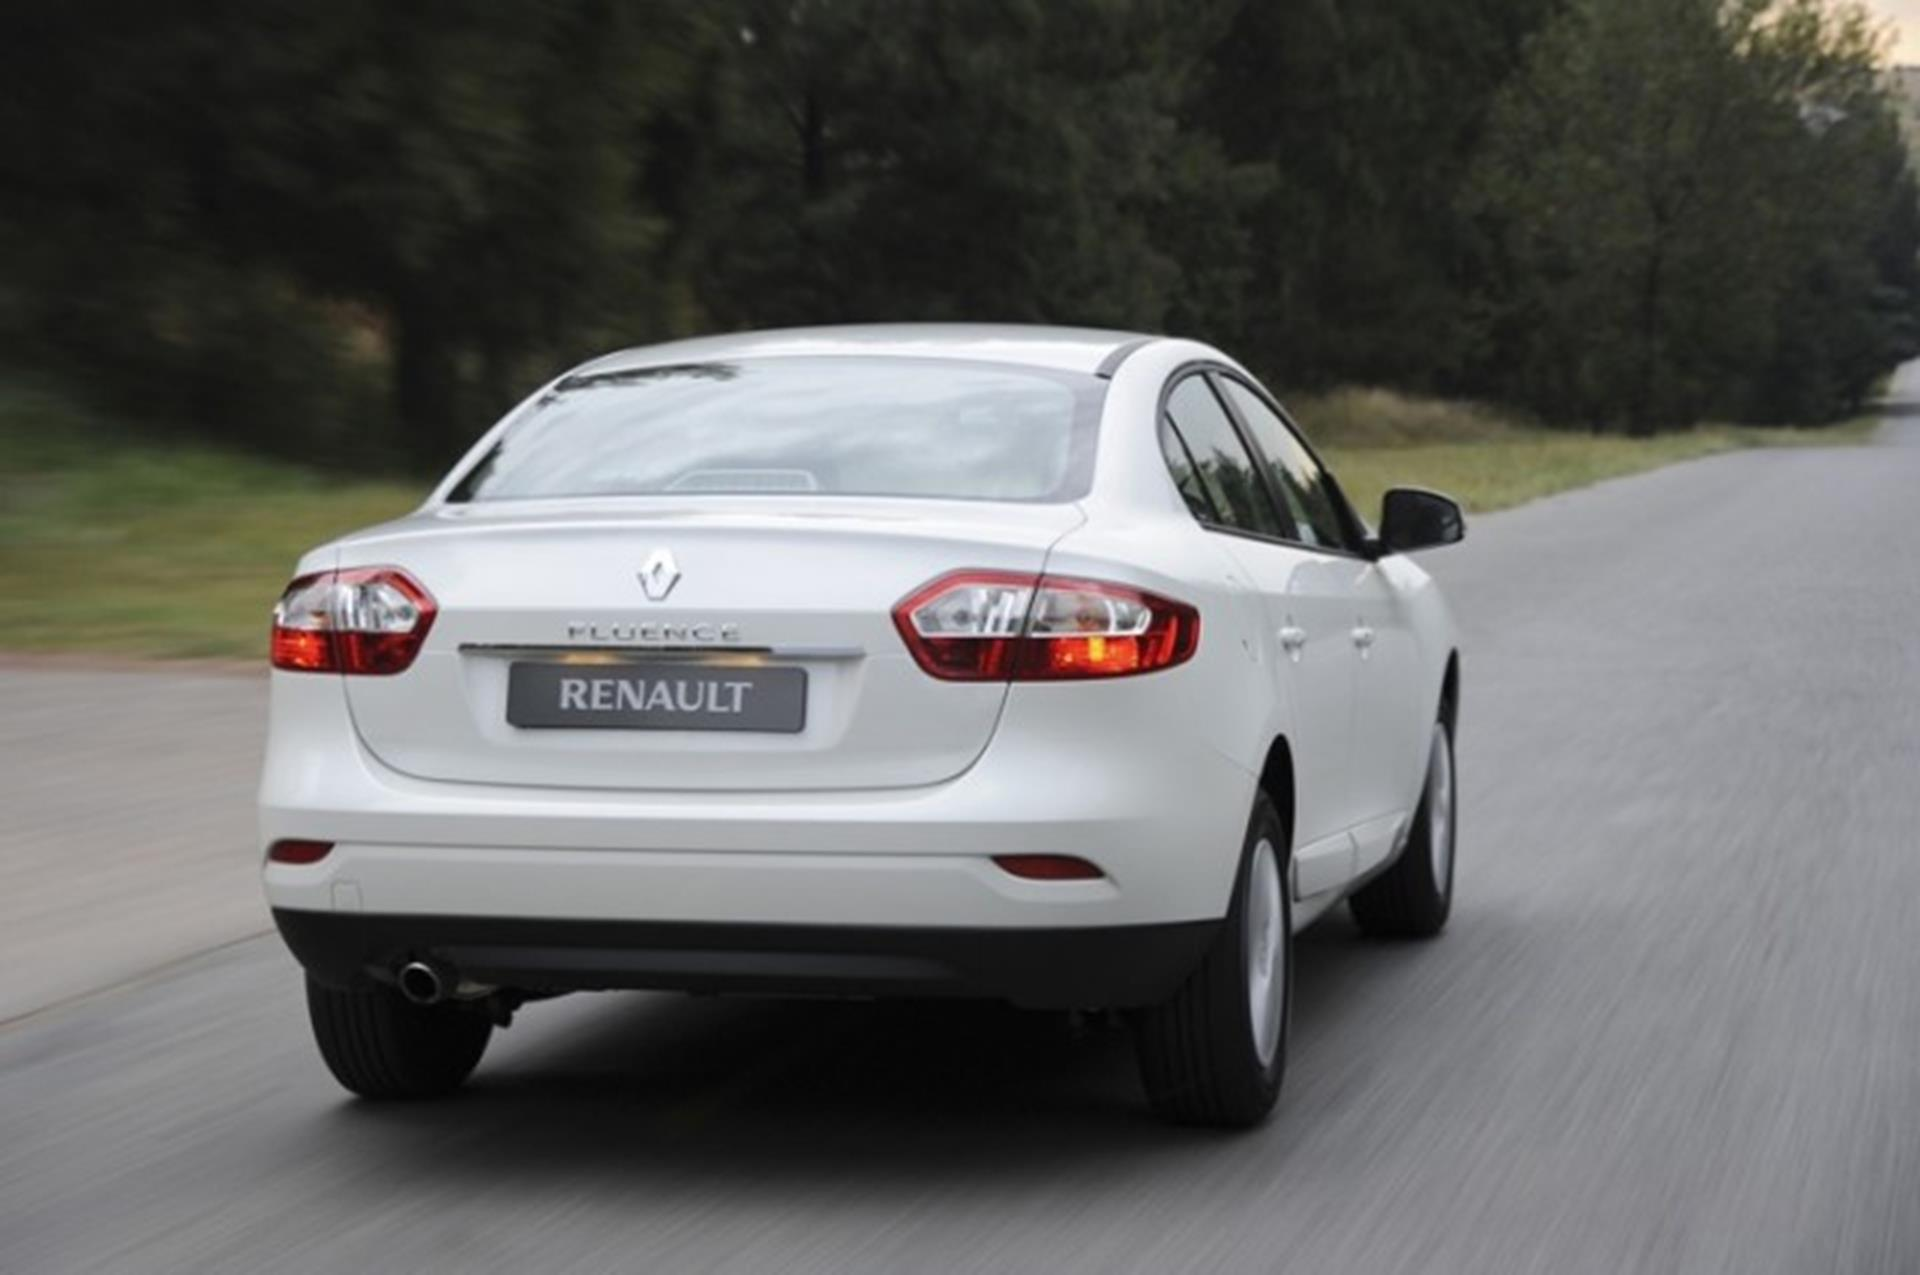 Renaul Fluence Rear